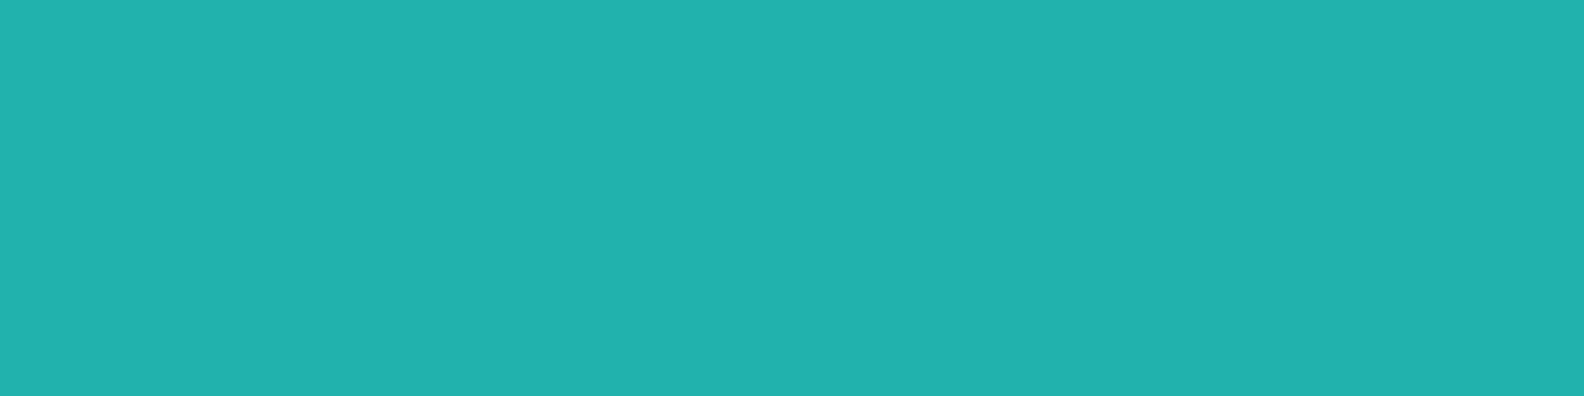 1584x396 Light Sea Green Solid Color Background